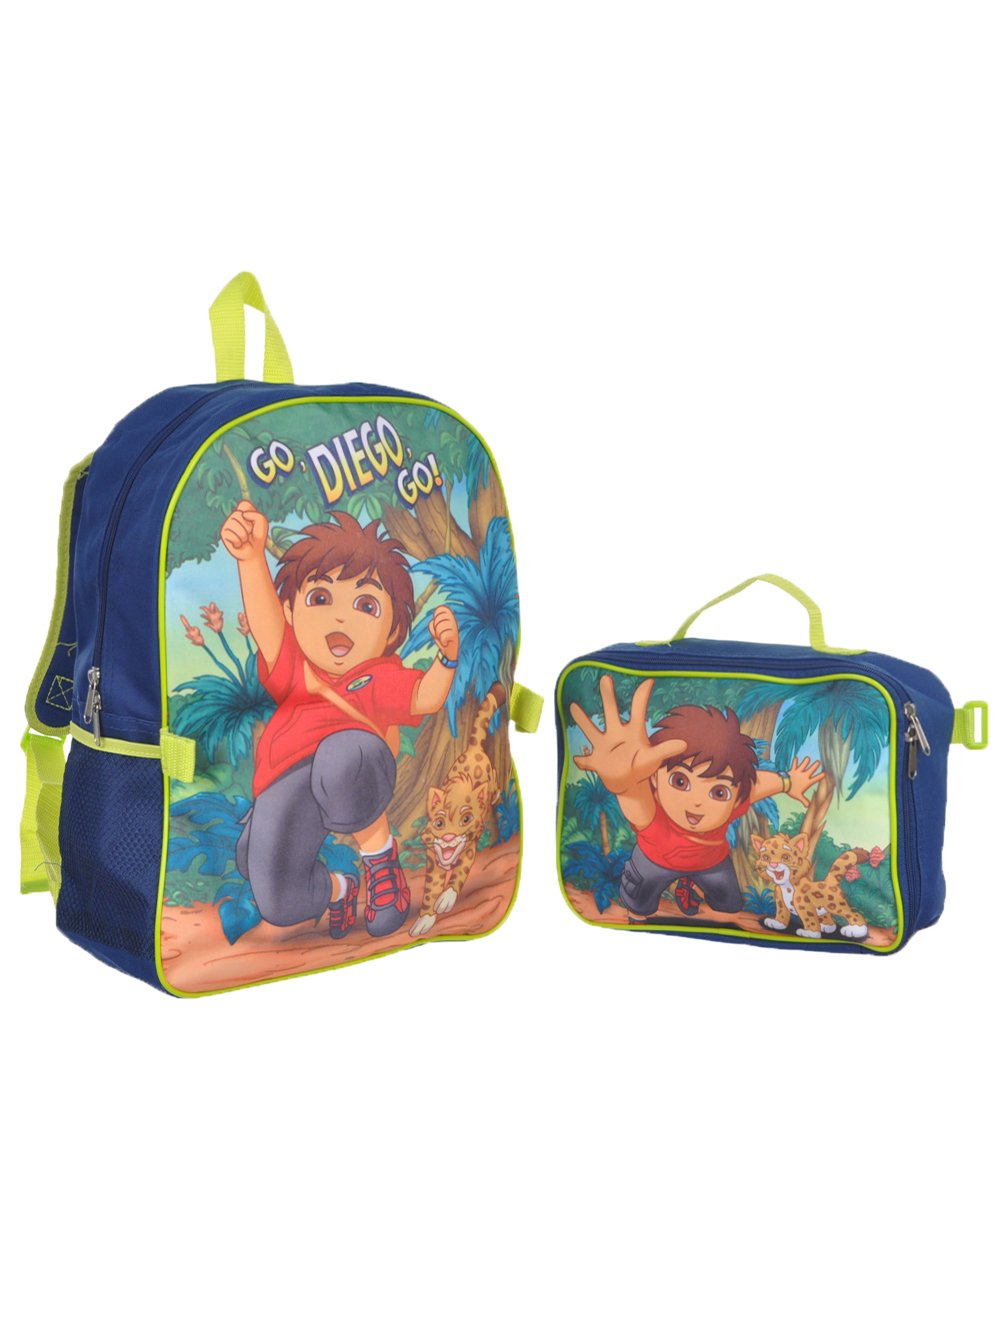 Go, Diego, Go! ''Let's Go Adventuring'' Backpack with Lunchbox - navy/light green, one size